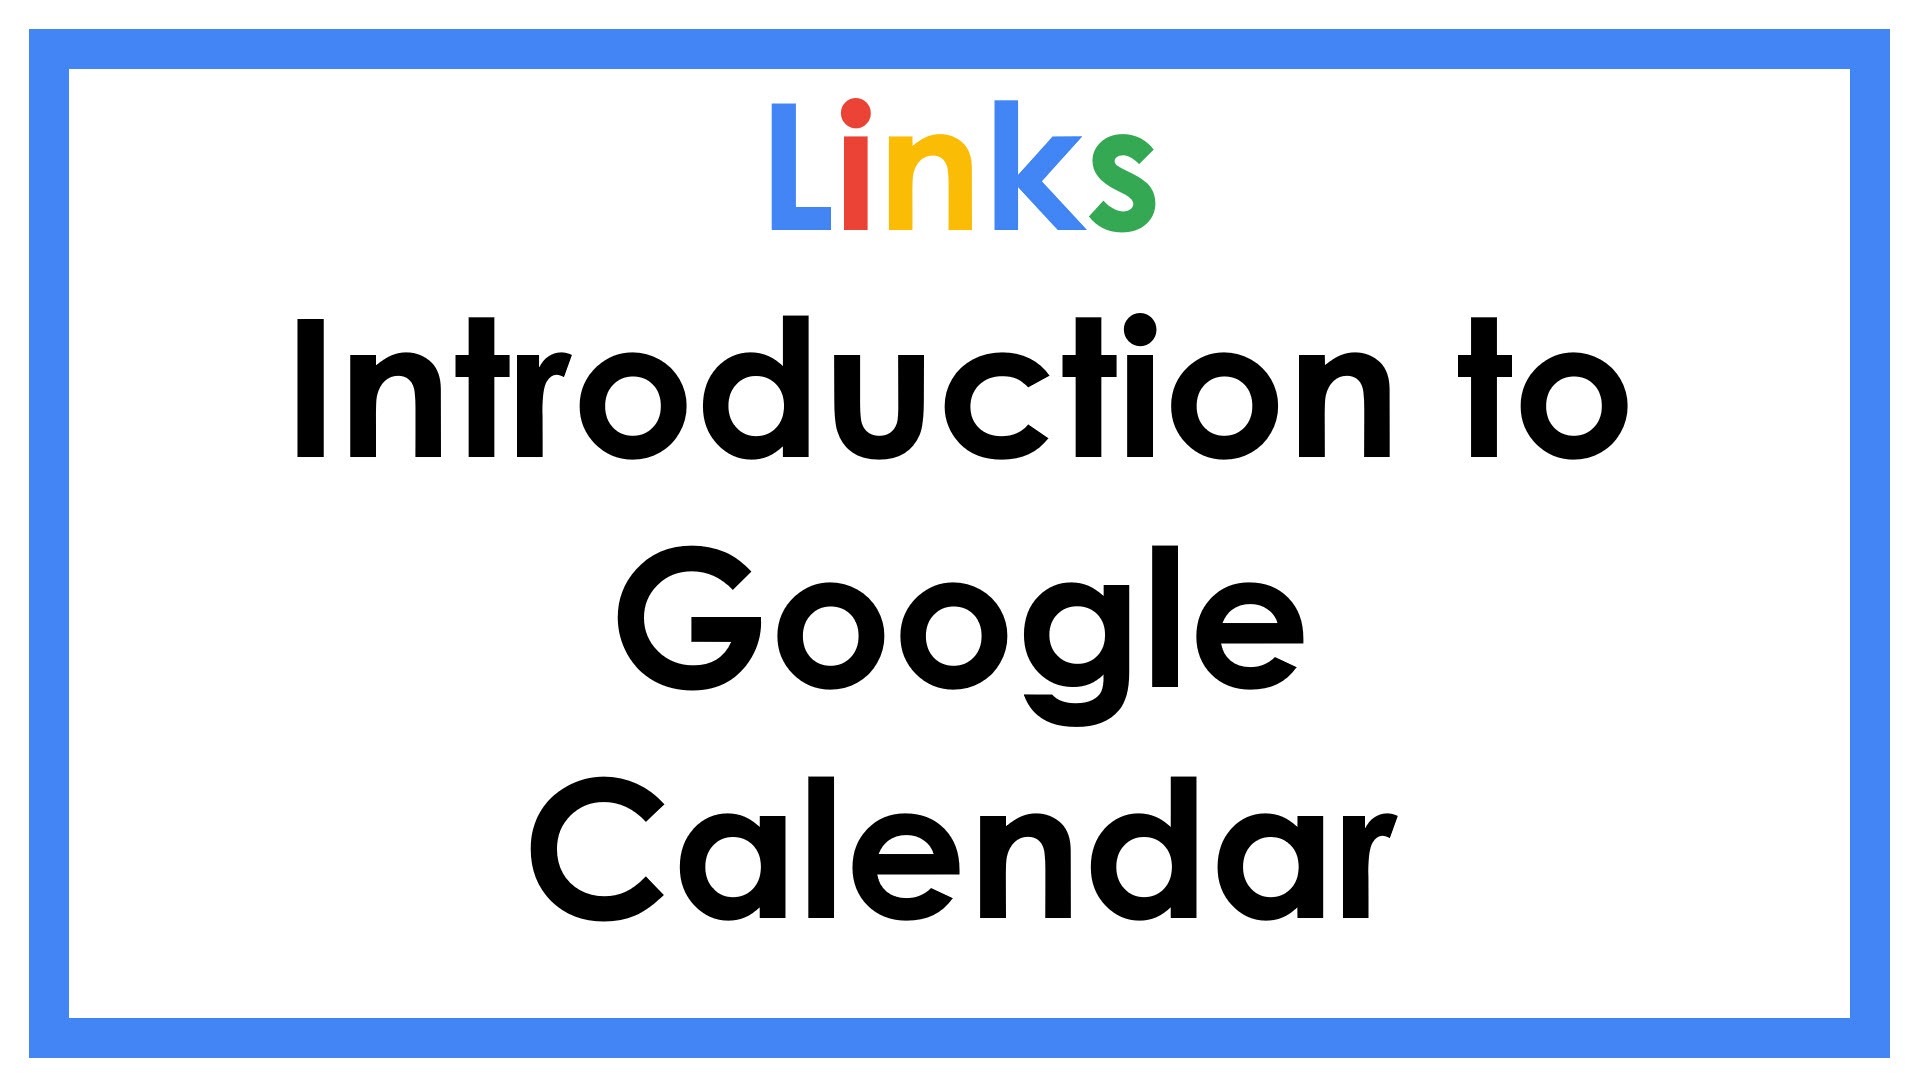 Introduction to Google Calendar